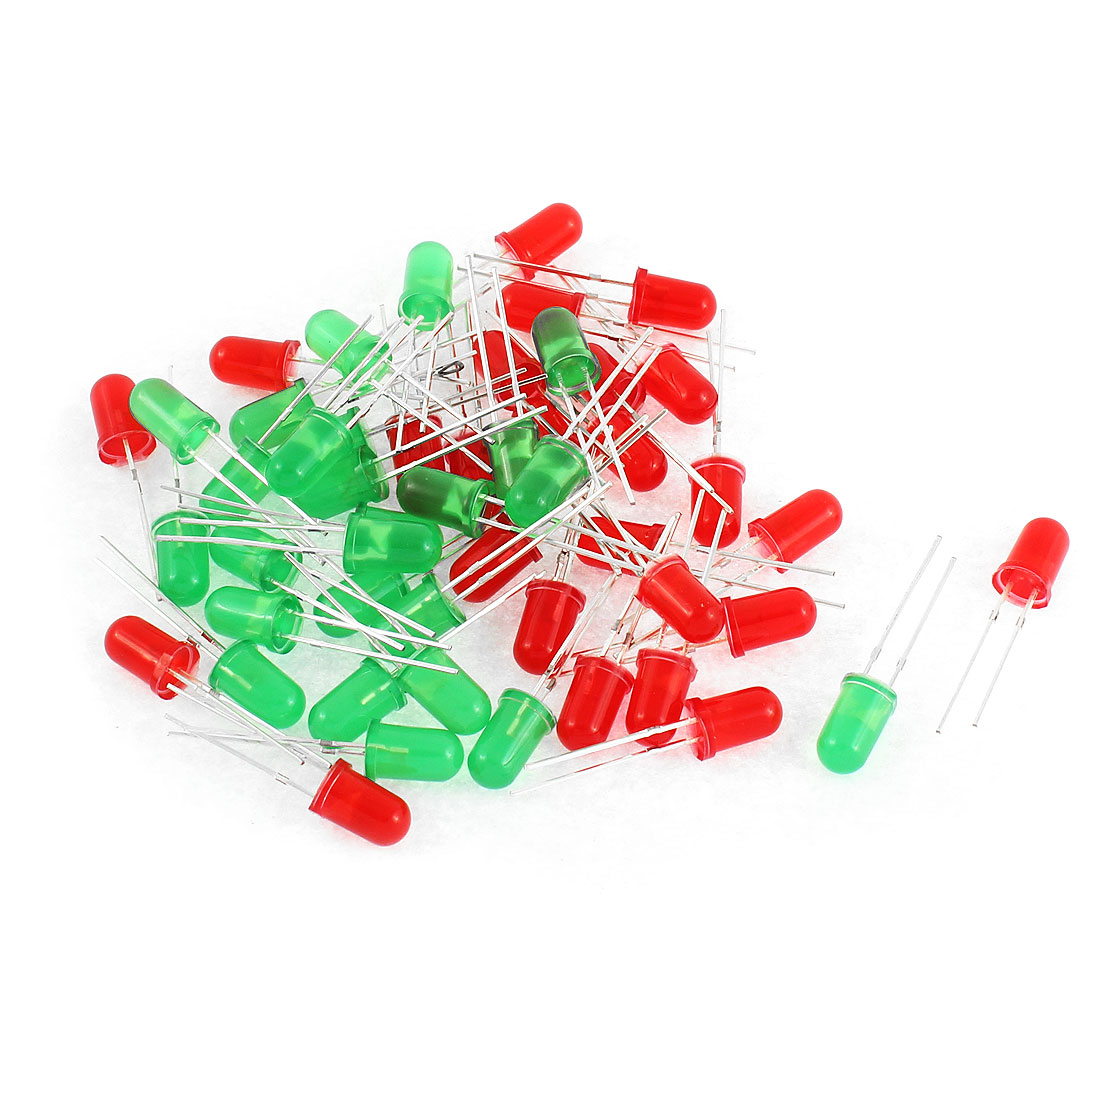 50pcs Red Green Diffused Emitting Diode Emission Tube Leds Component